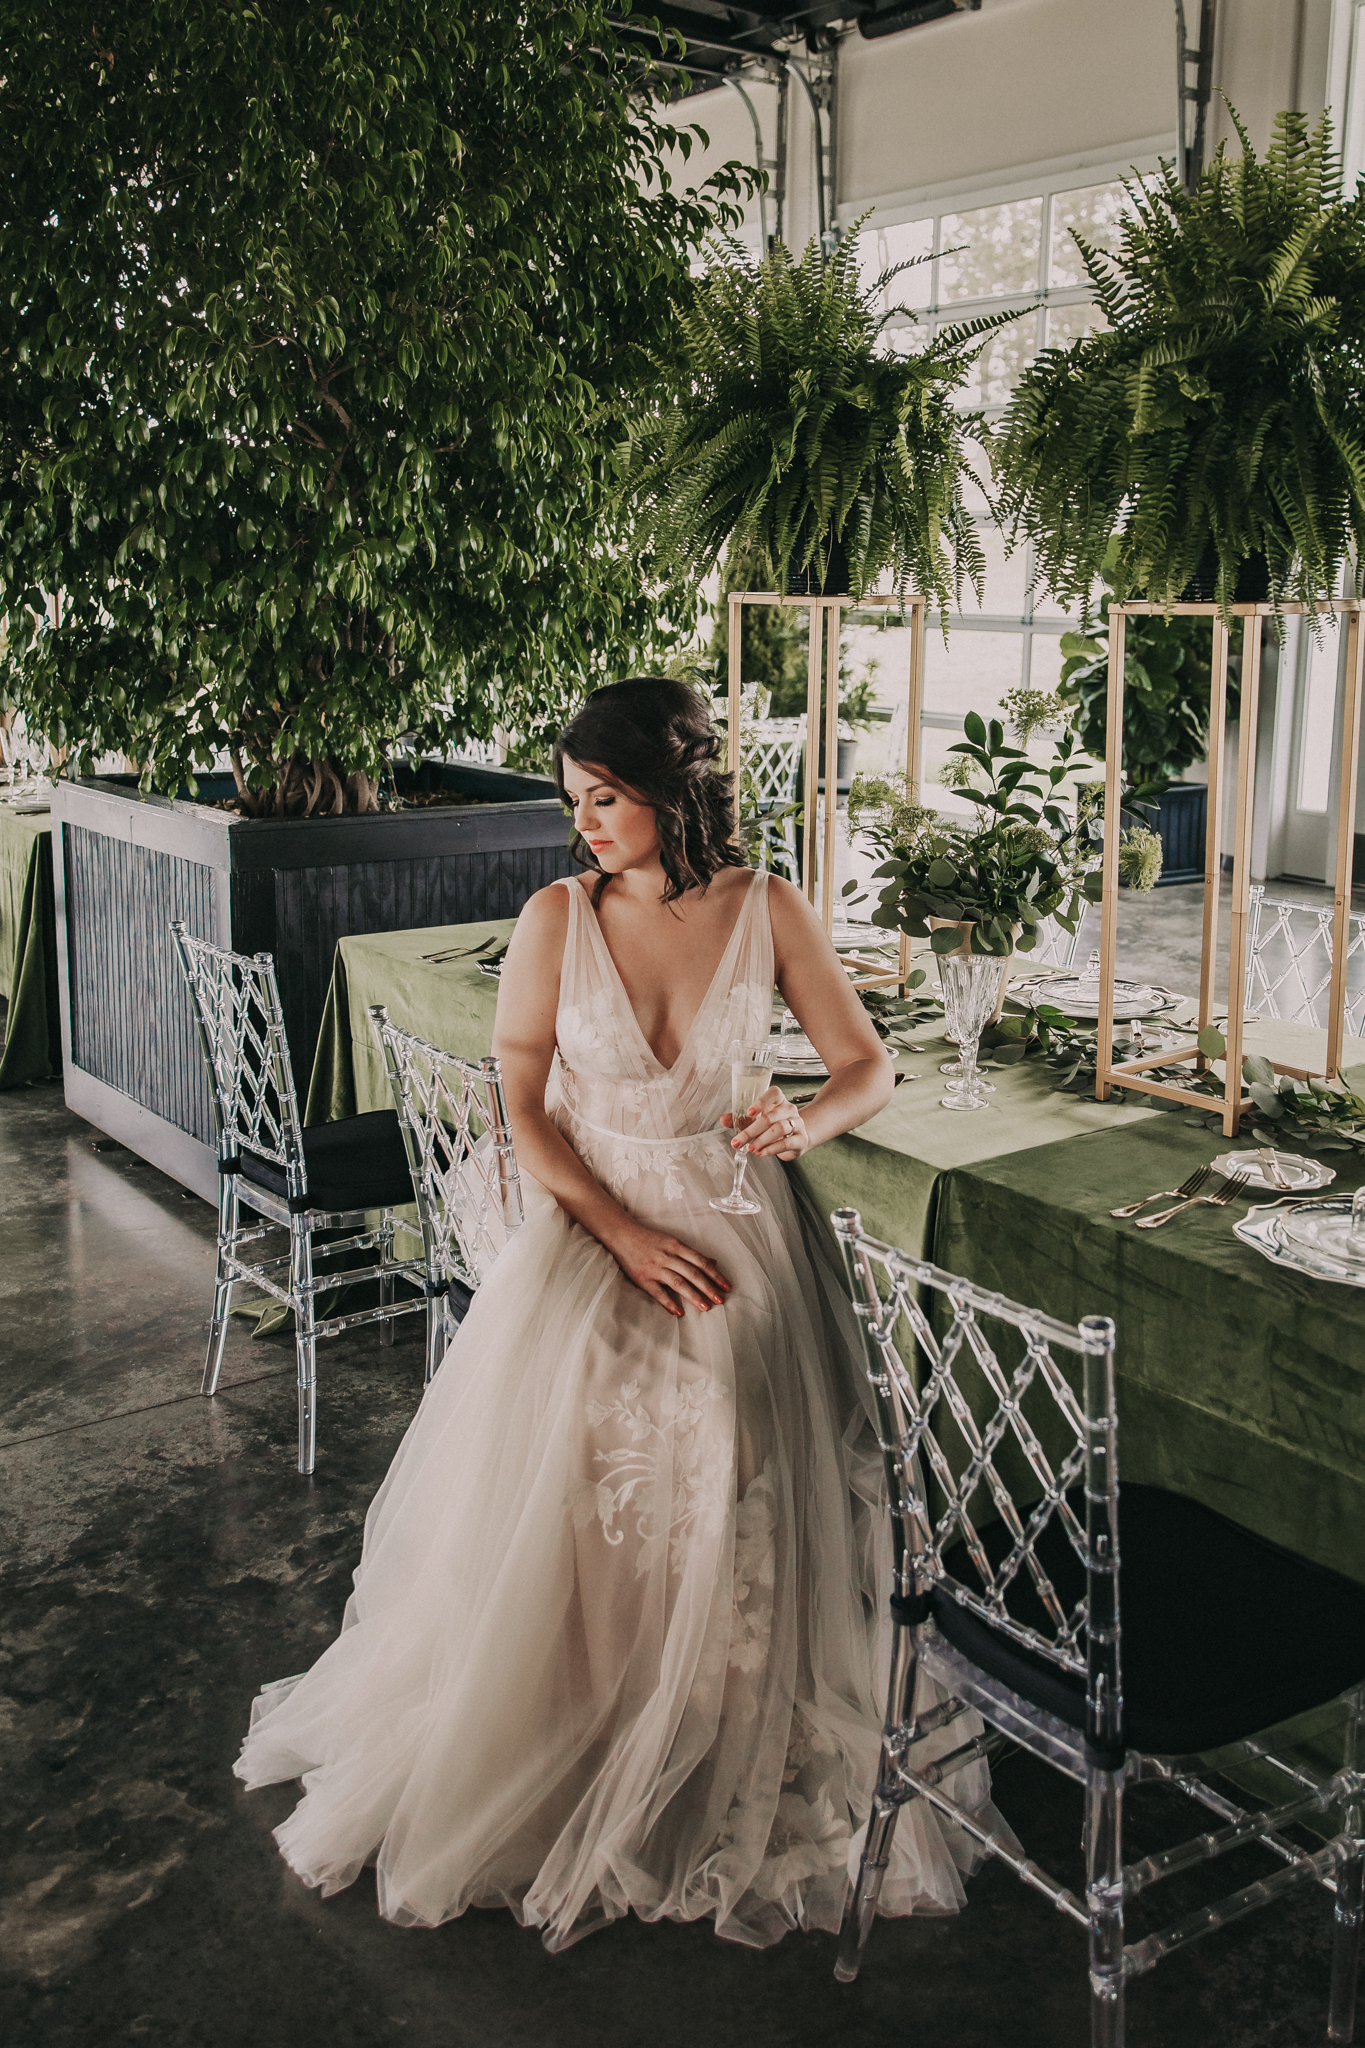 Lavender Park Bridal Gown: Shades of Green Legacy Styled Shoot by Music City Events and Billie-Shaye Style featured on Nashville Bride Guide